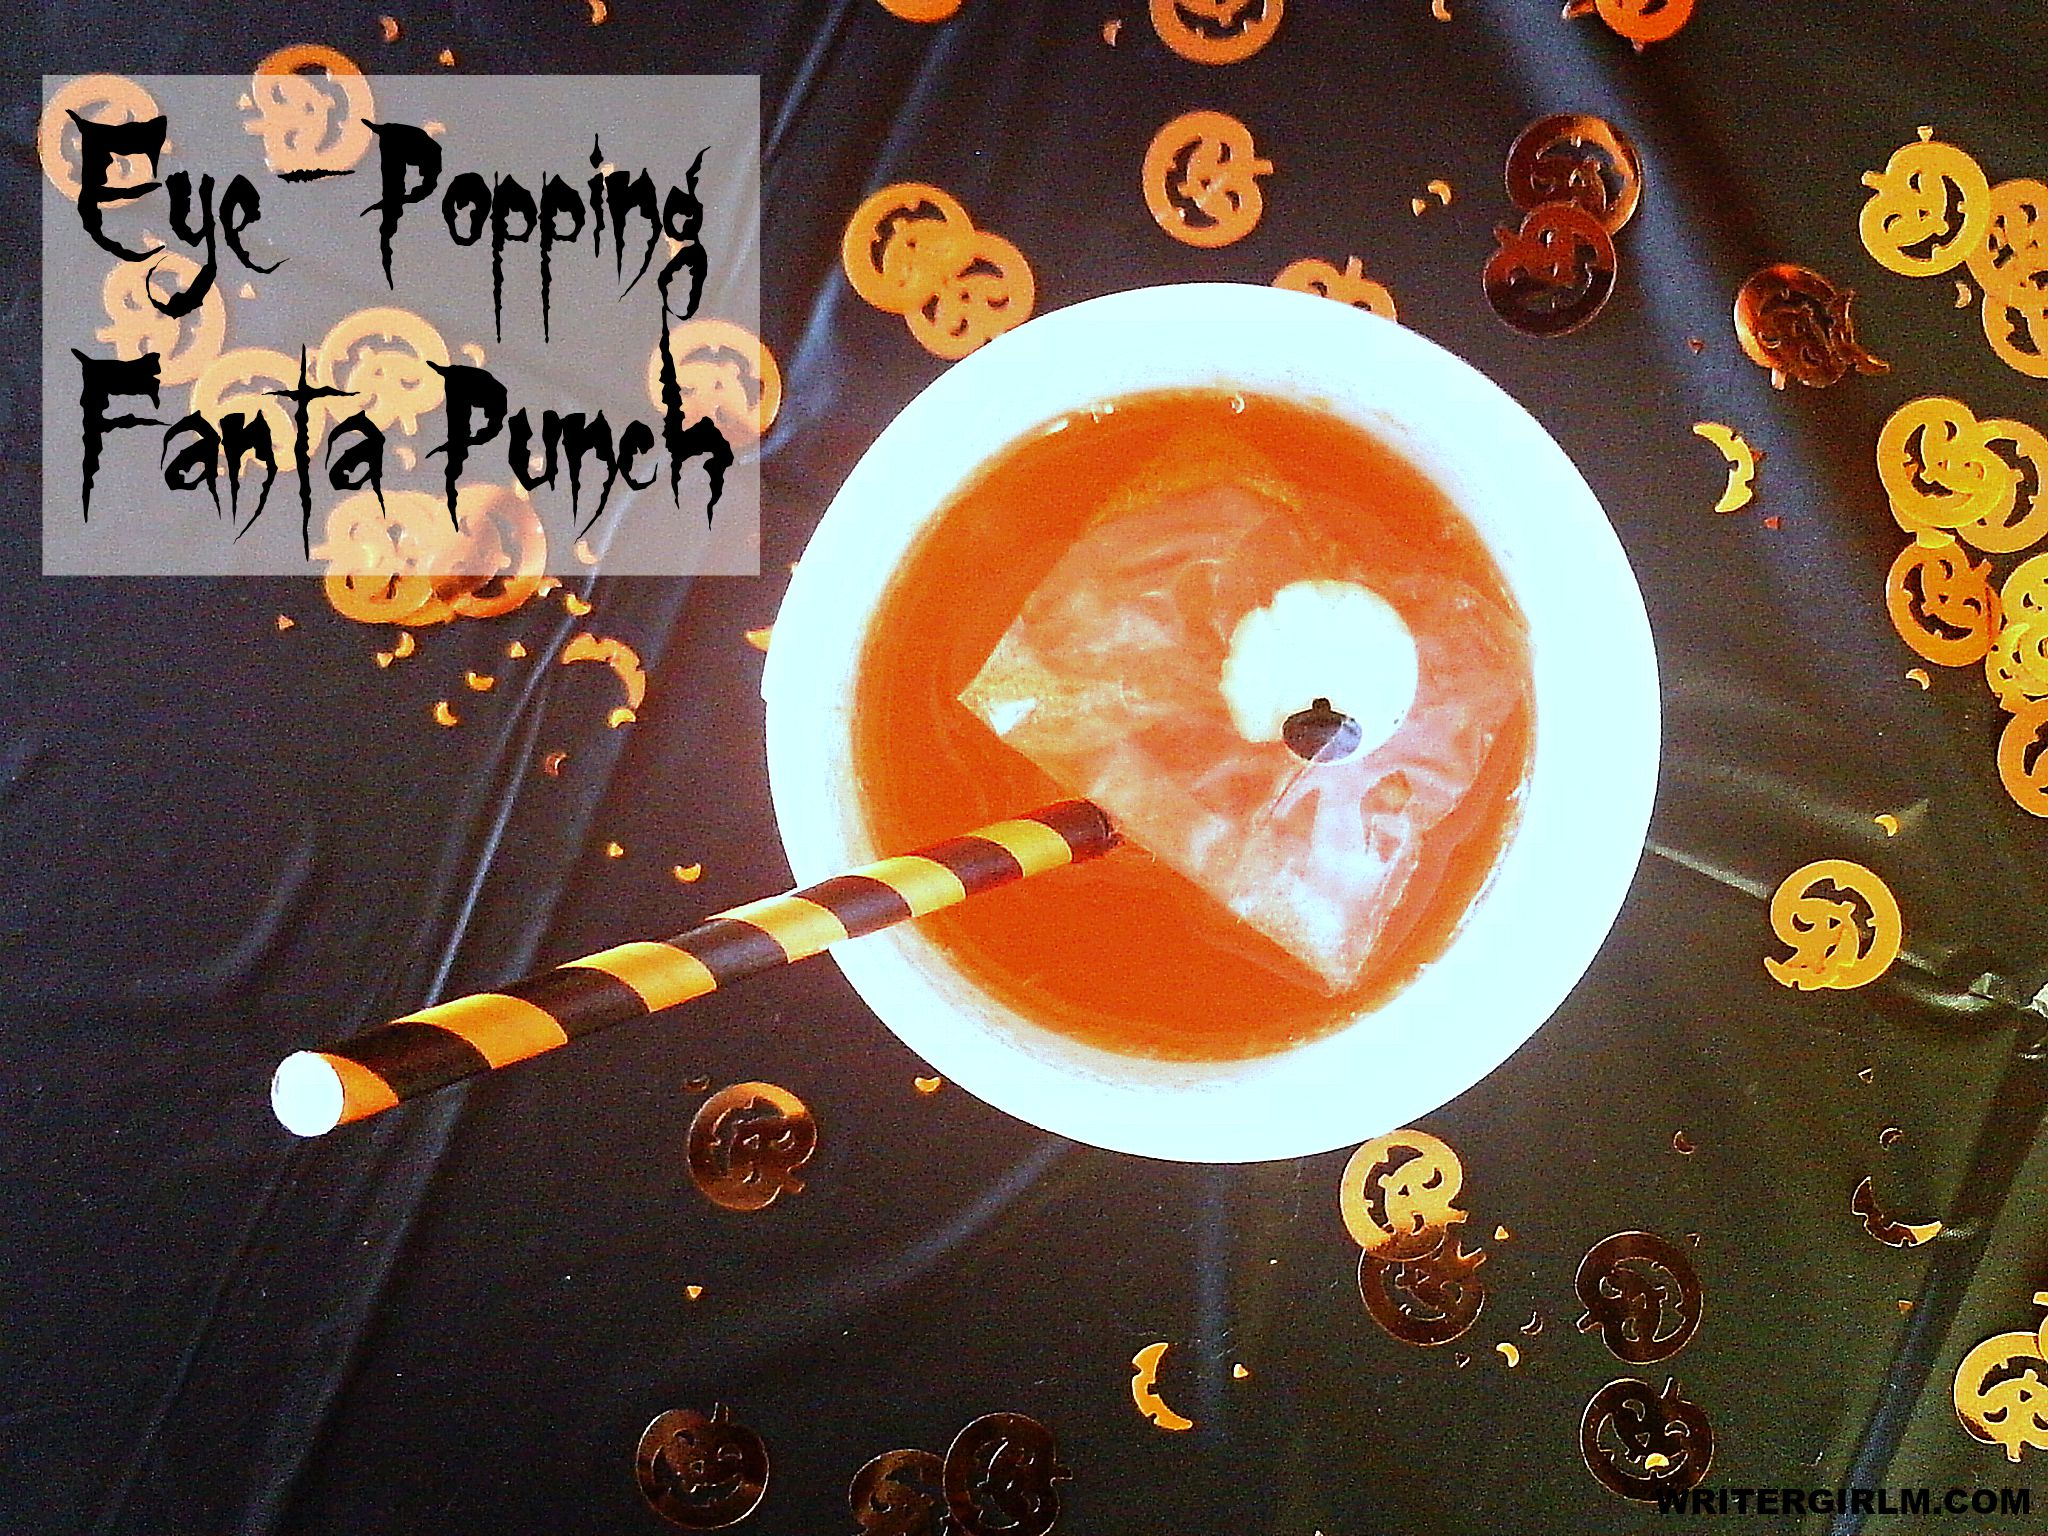 Make this easy two-ingredient Eye-Popping Fanta Punch for your next Halloween bash! #SpookySnacks #CollectiveBias